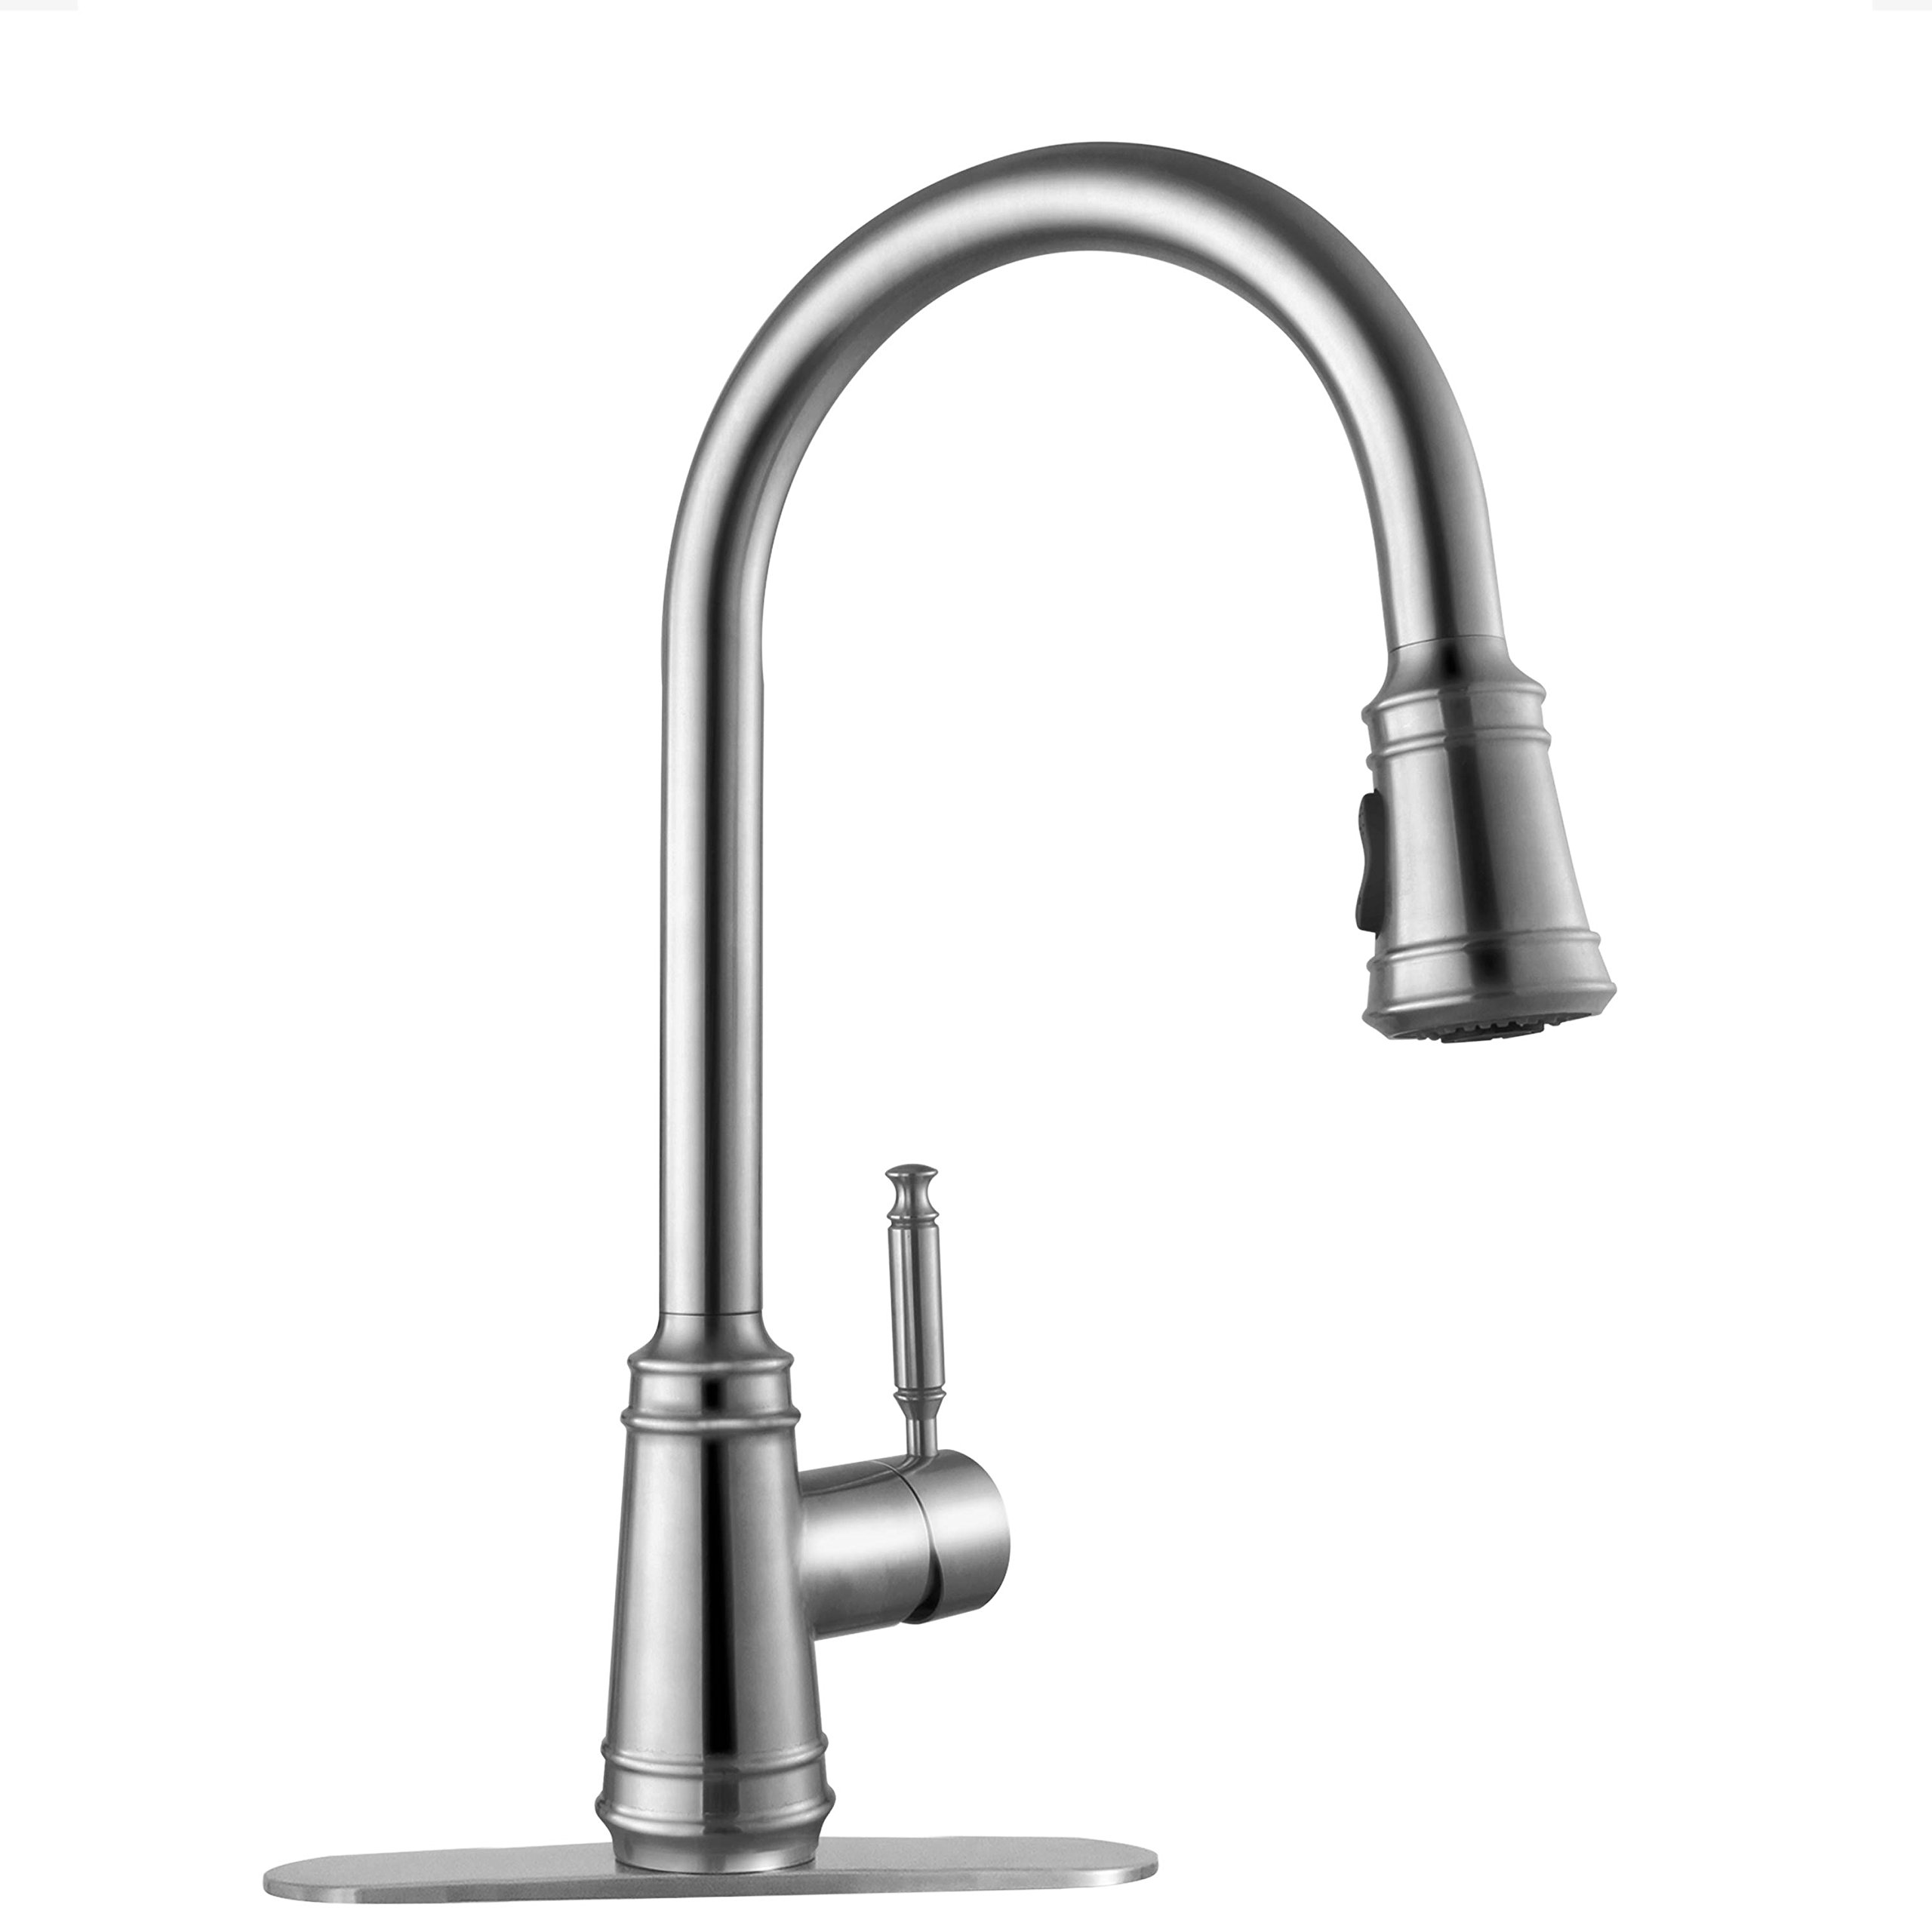 dst image pull water efficient delta down faucet beverage single addison kitchen faucets handle